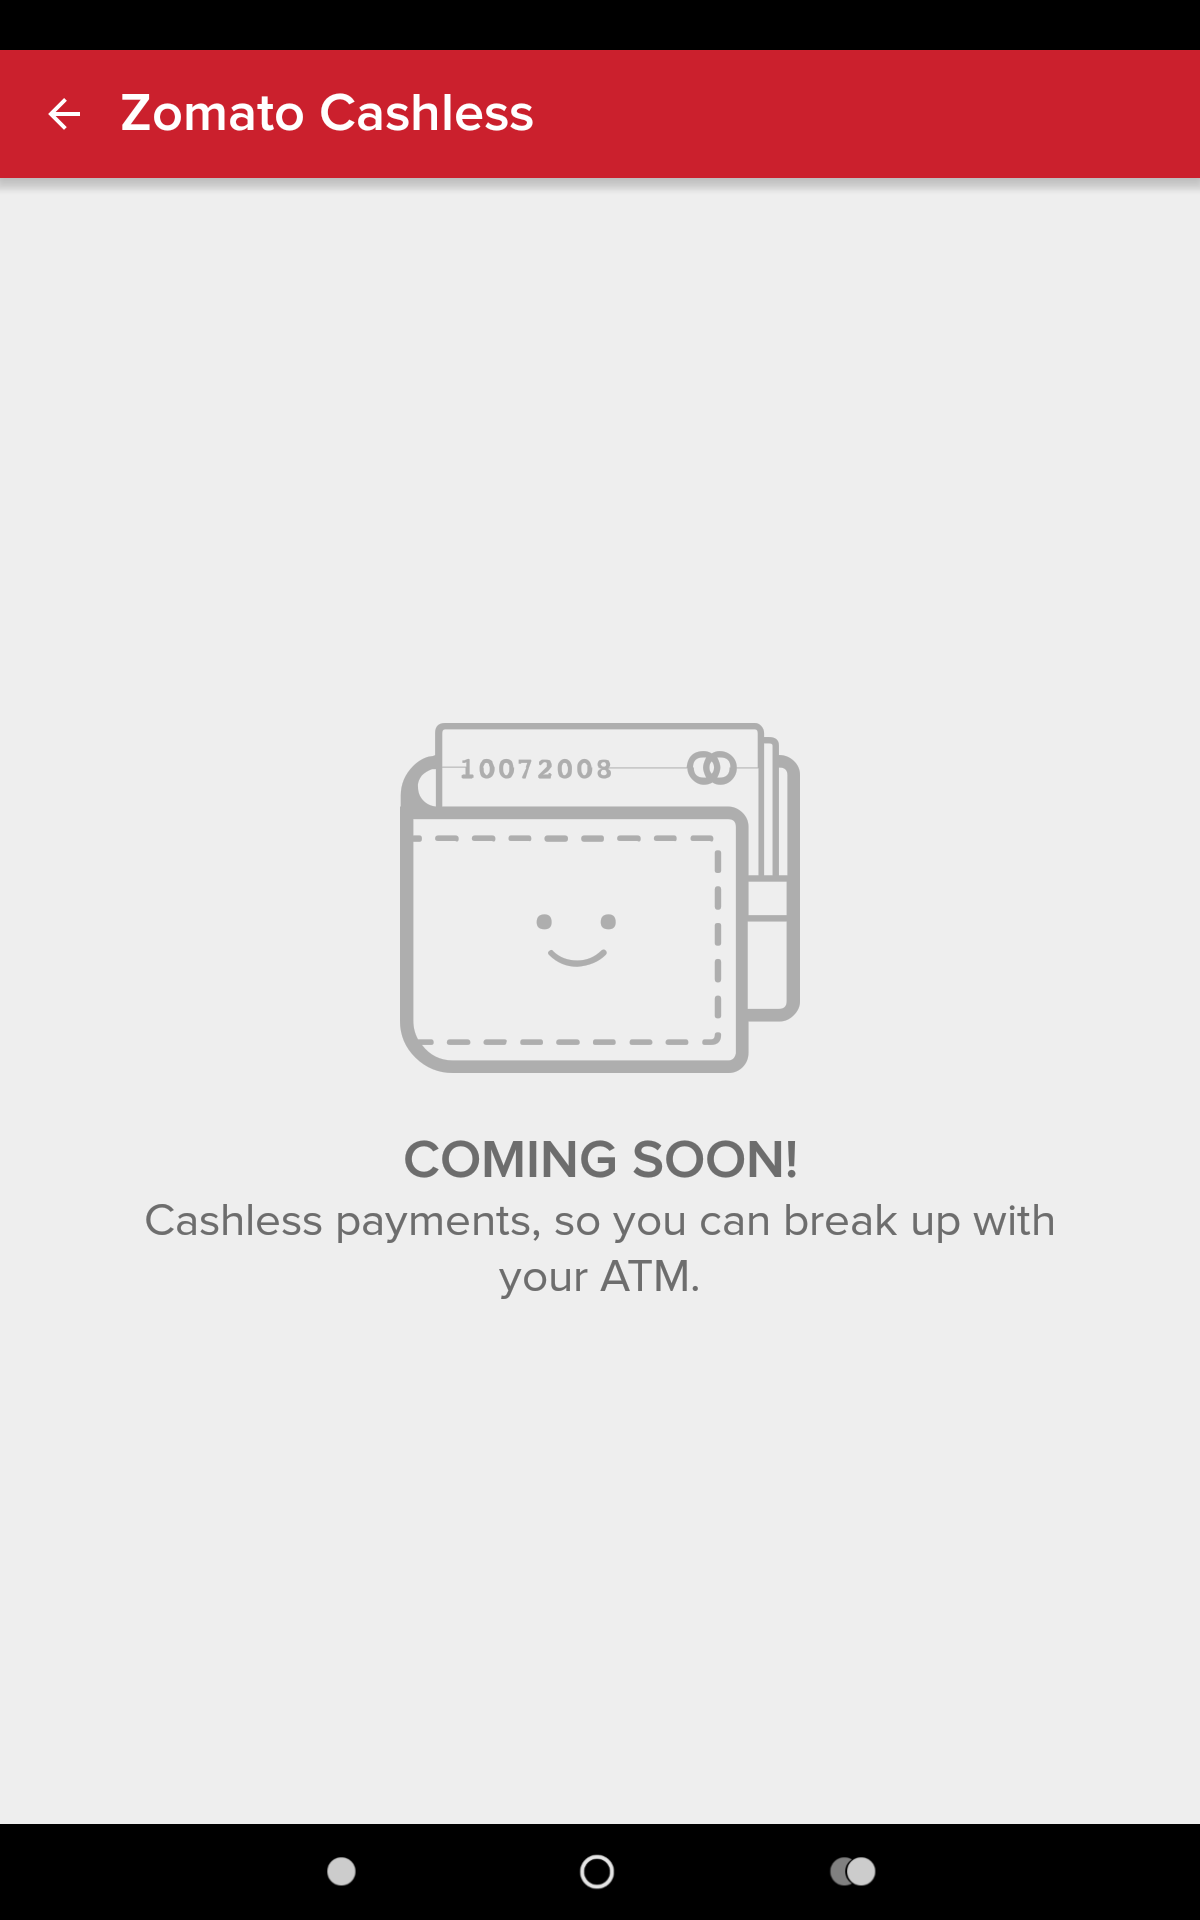 Zomato Cashless Payments - Coming Soon?